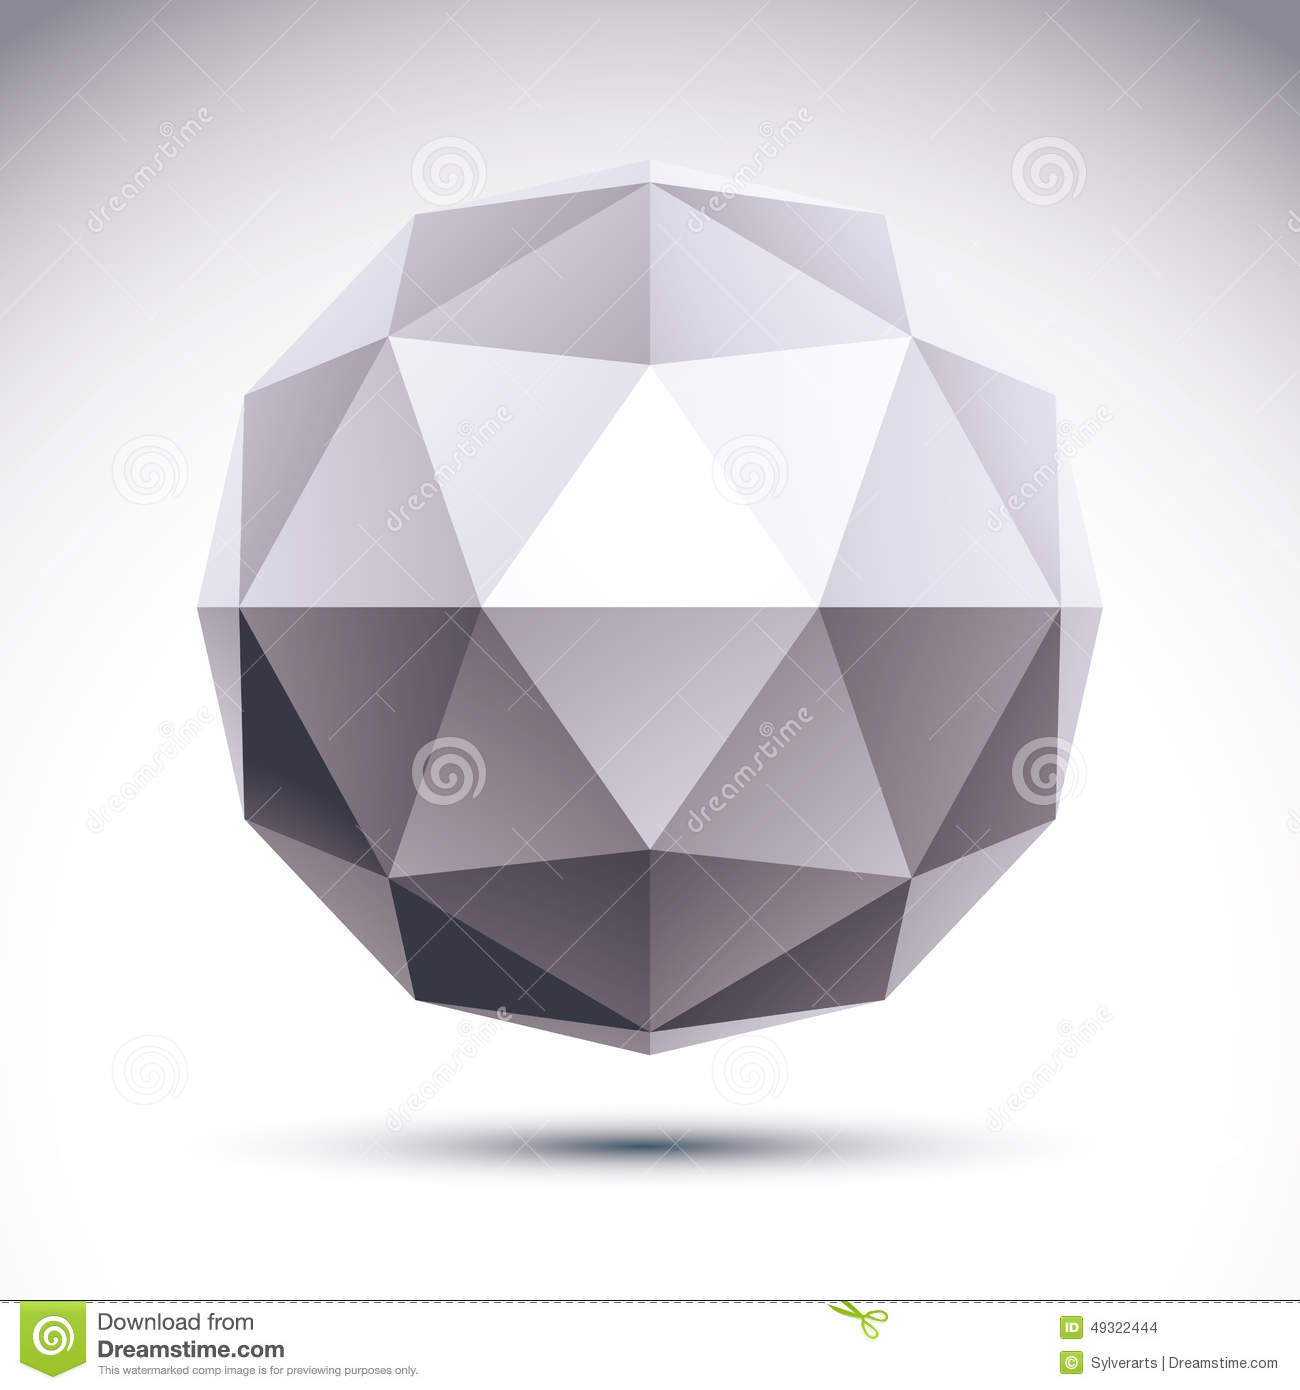 Abstract 3d Origami Polygonal Object Vector Geometric